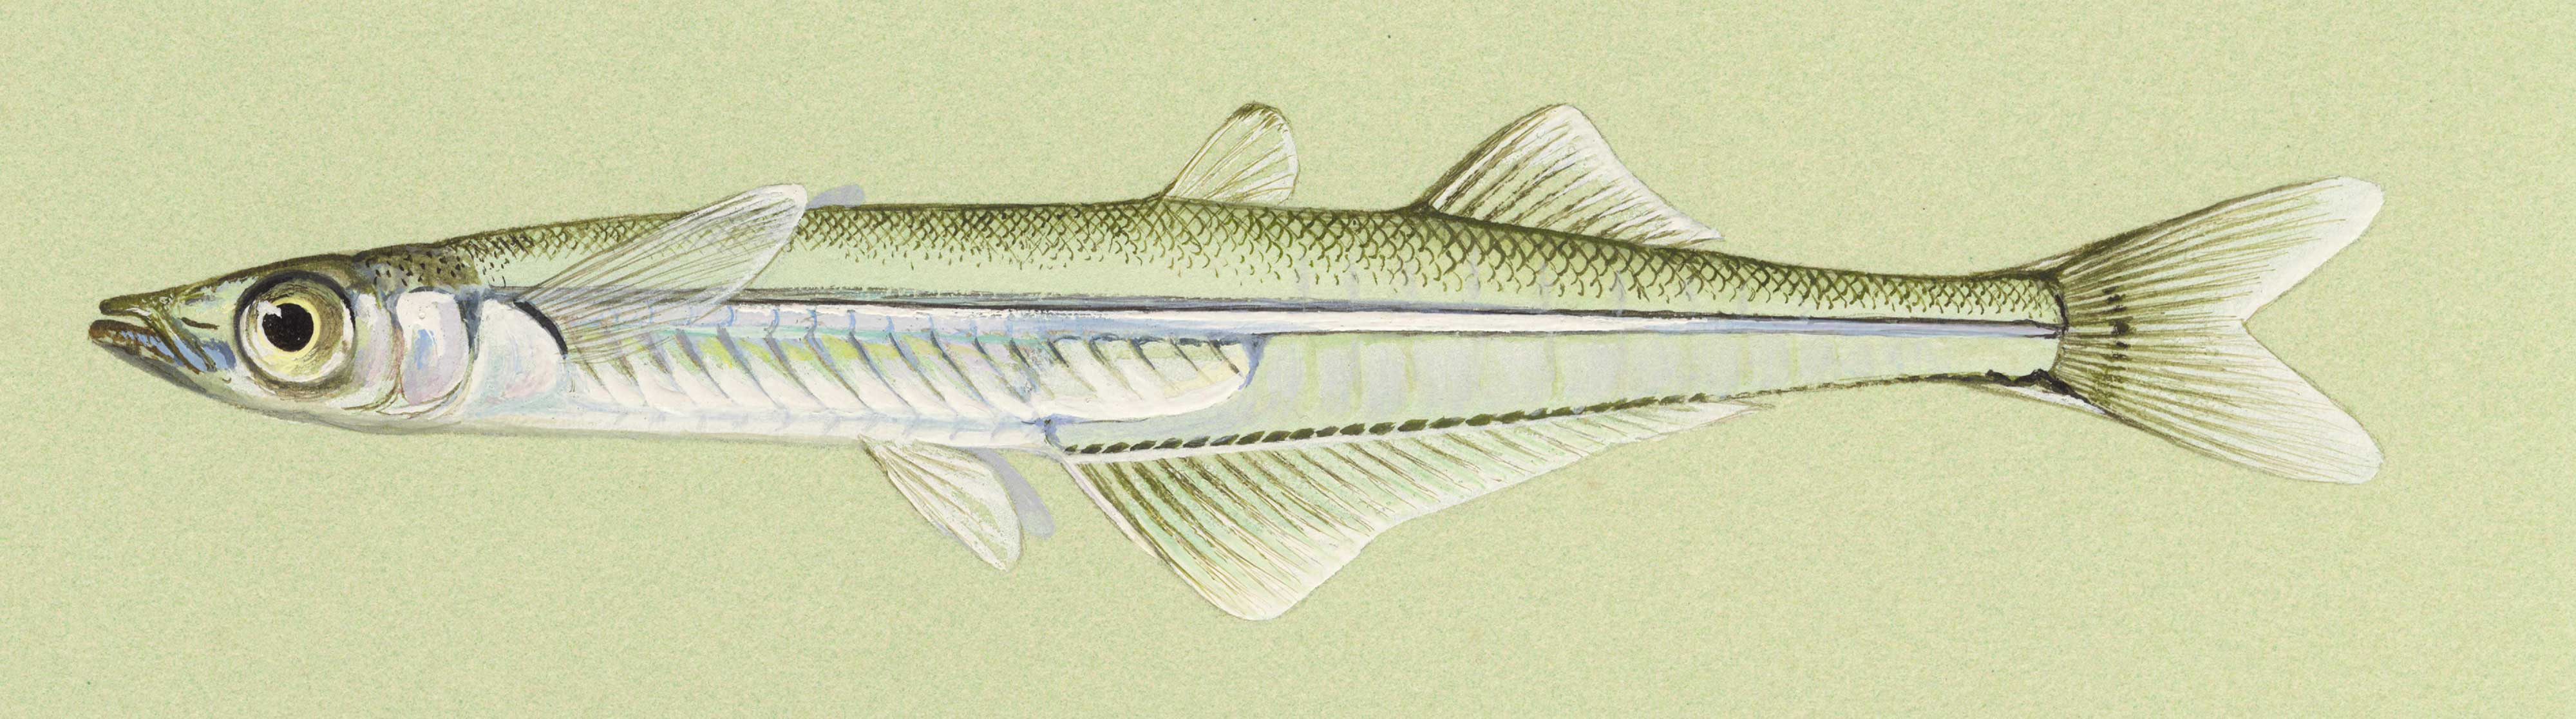 Brook Silverside, illustration by Maynard Reece, from Iowa Fish and Fishing.